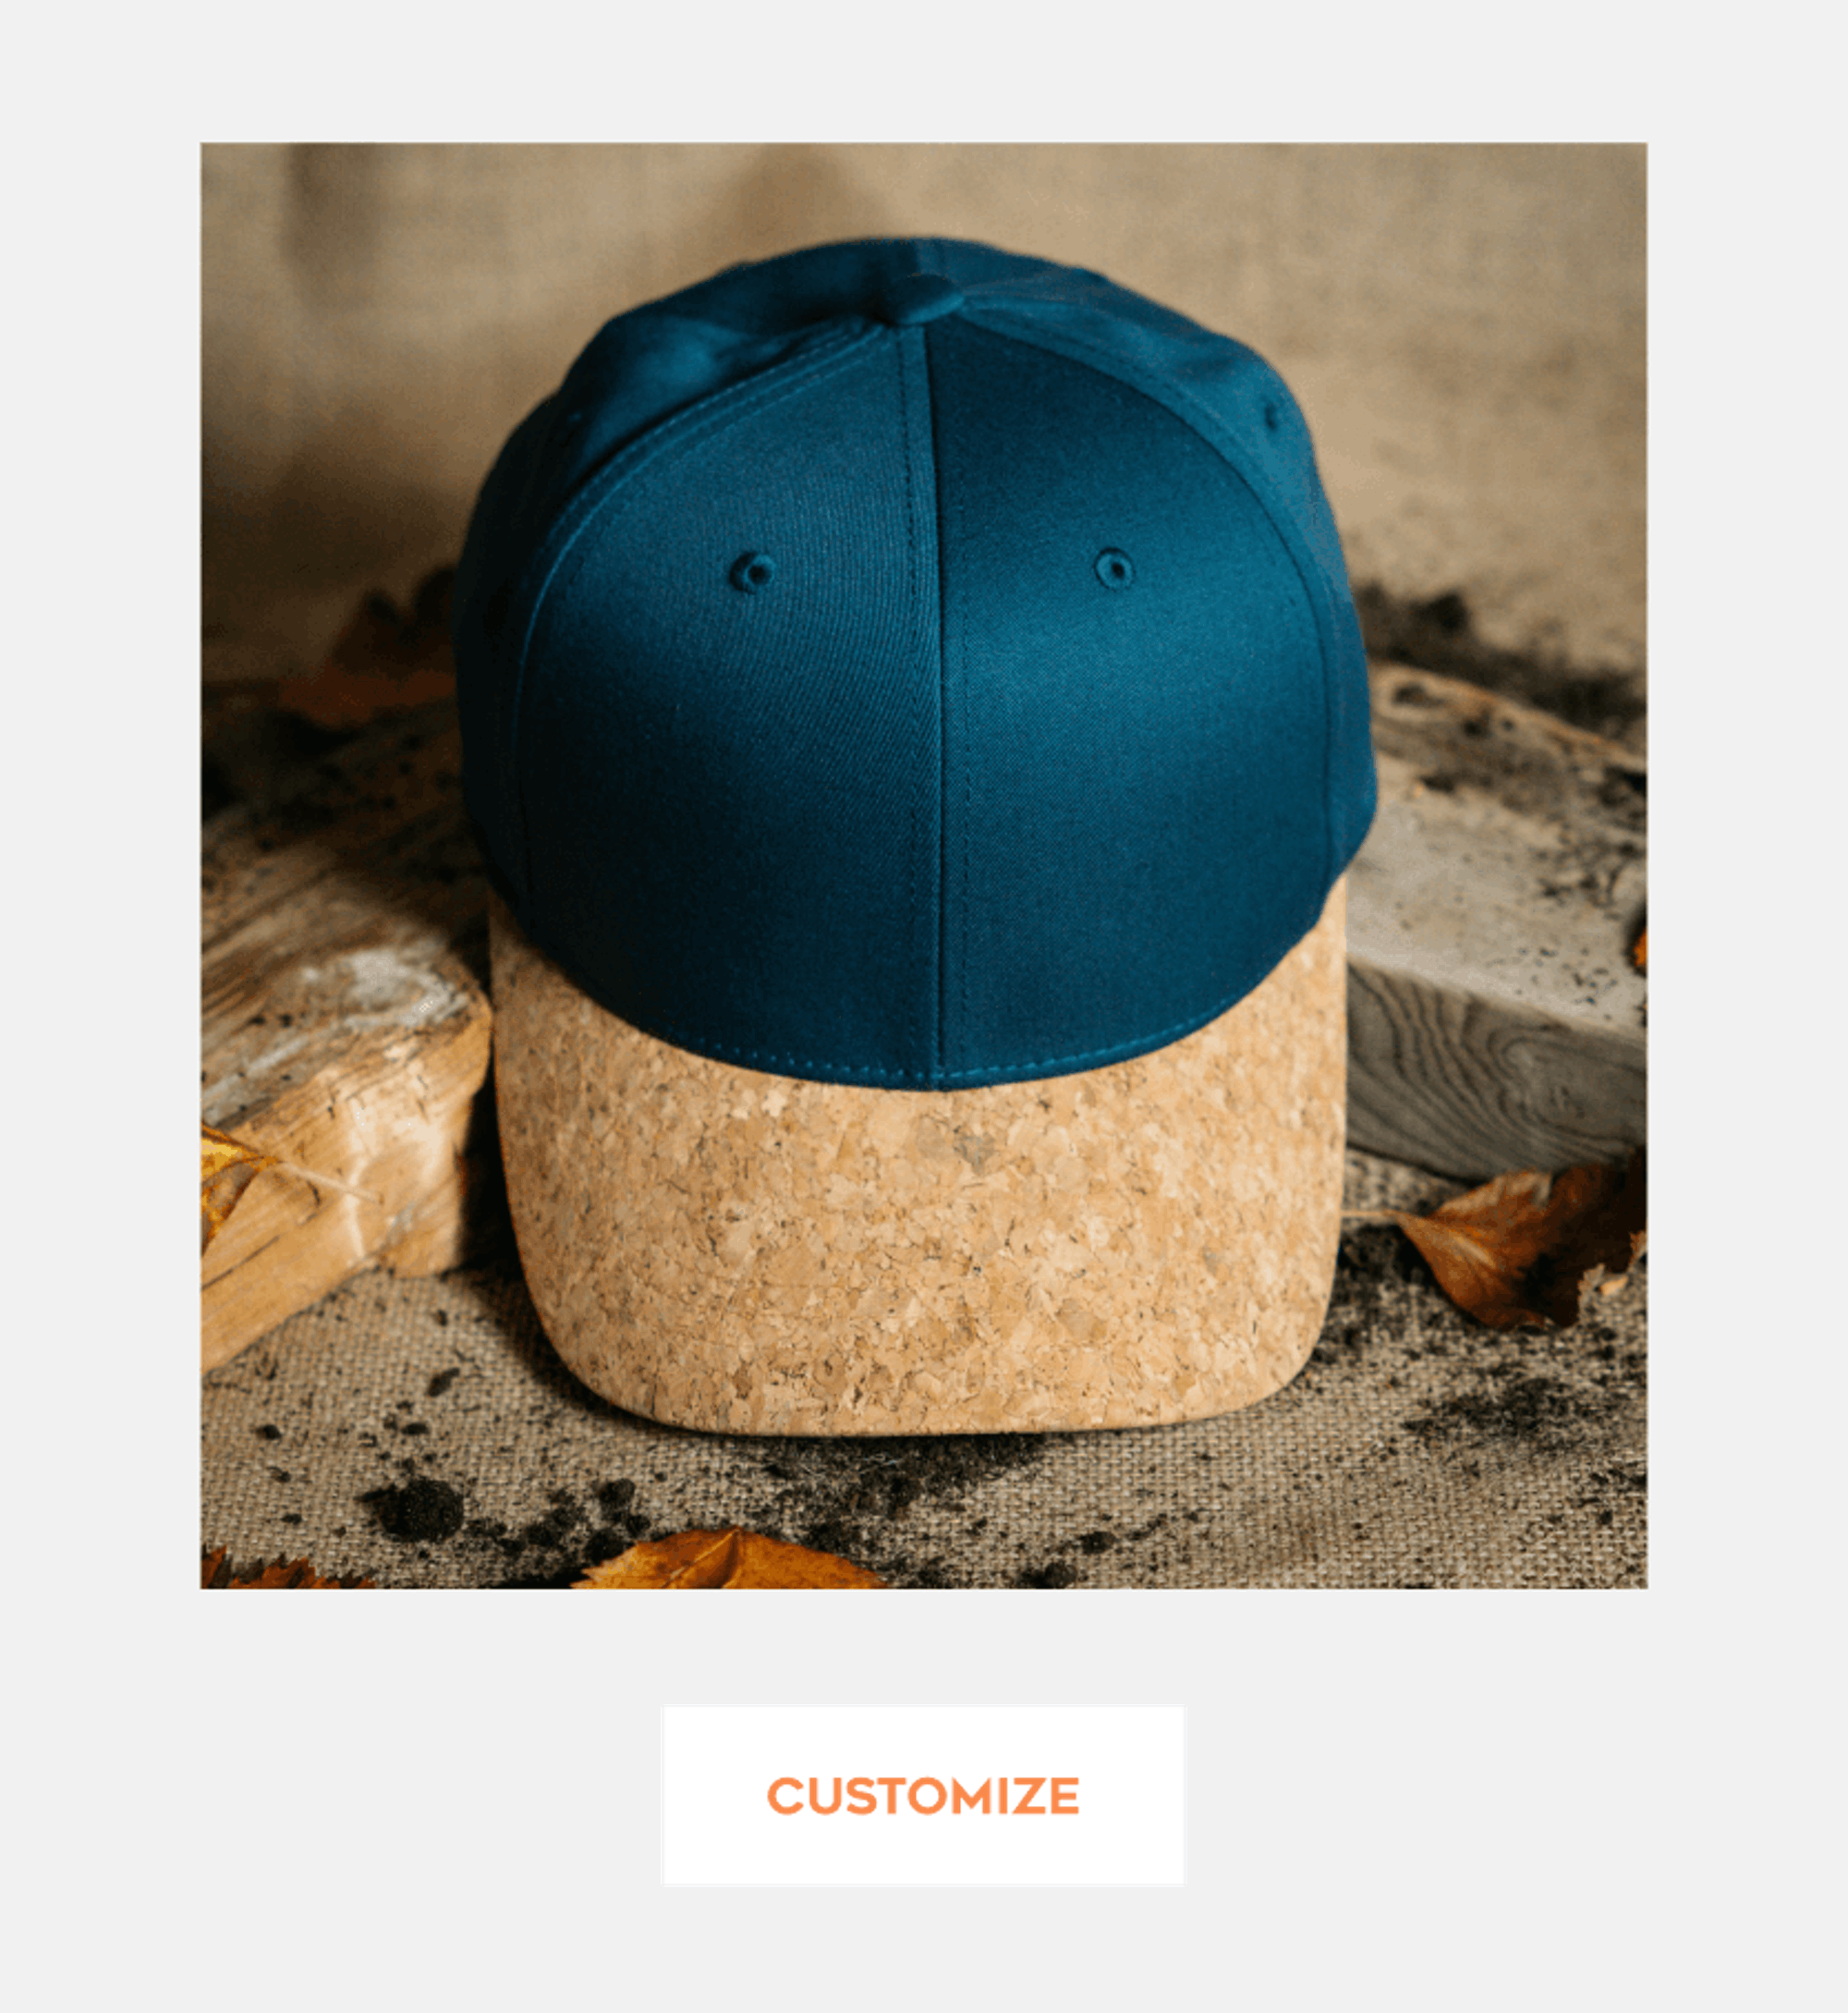 CUSTOMIZE WITH CORK